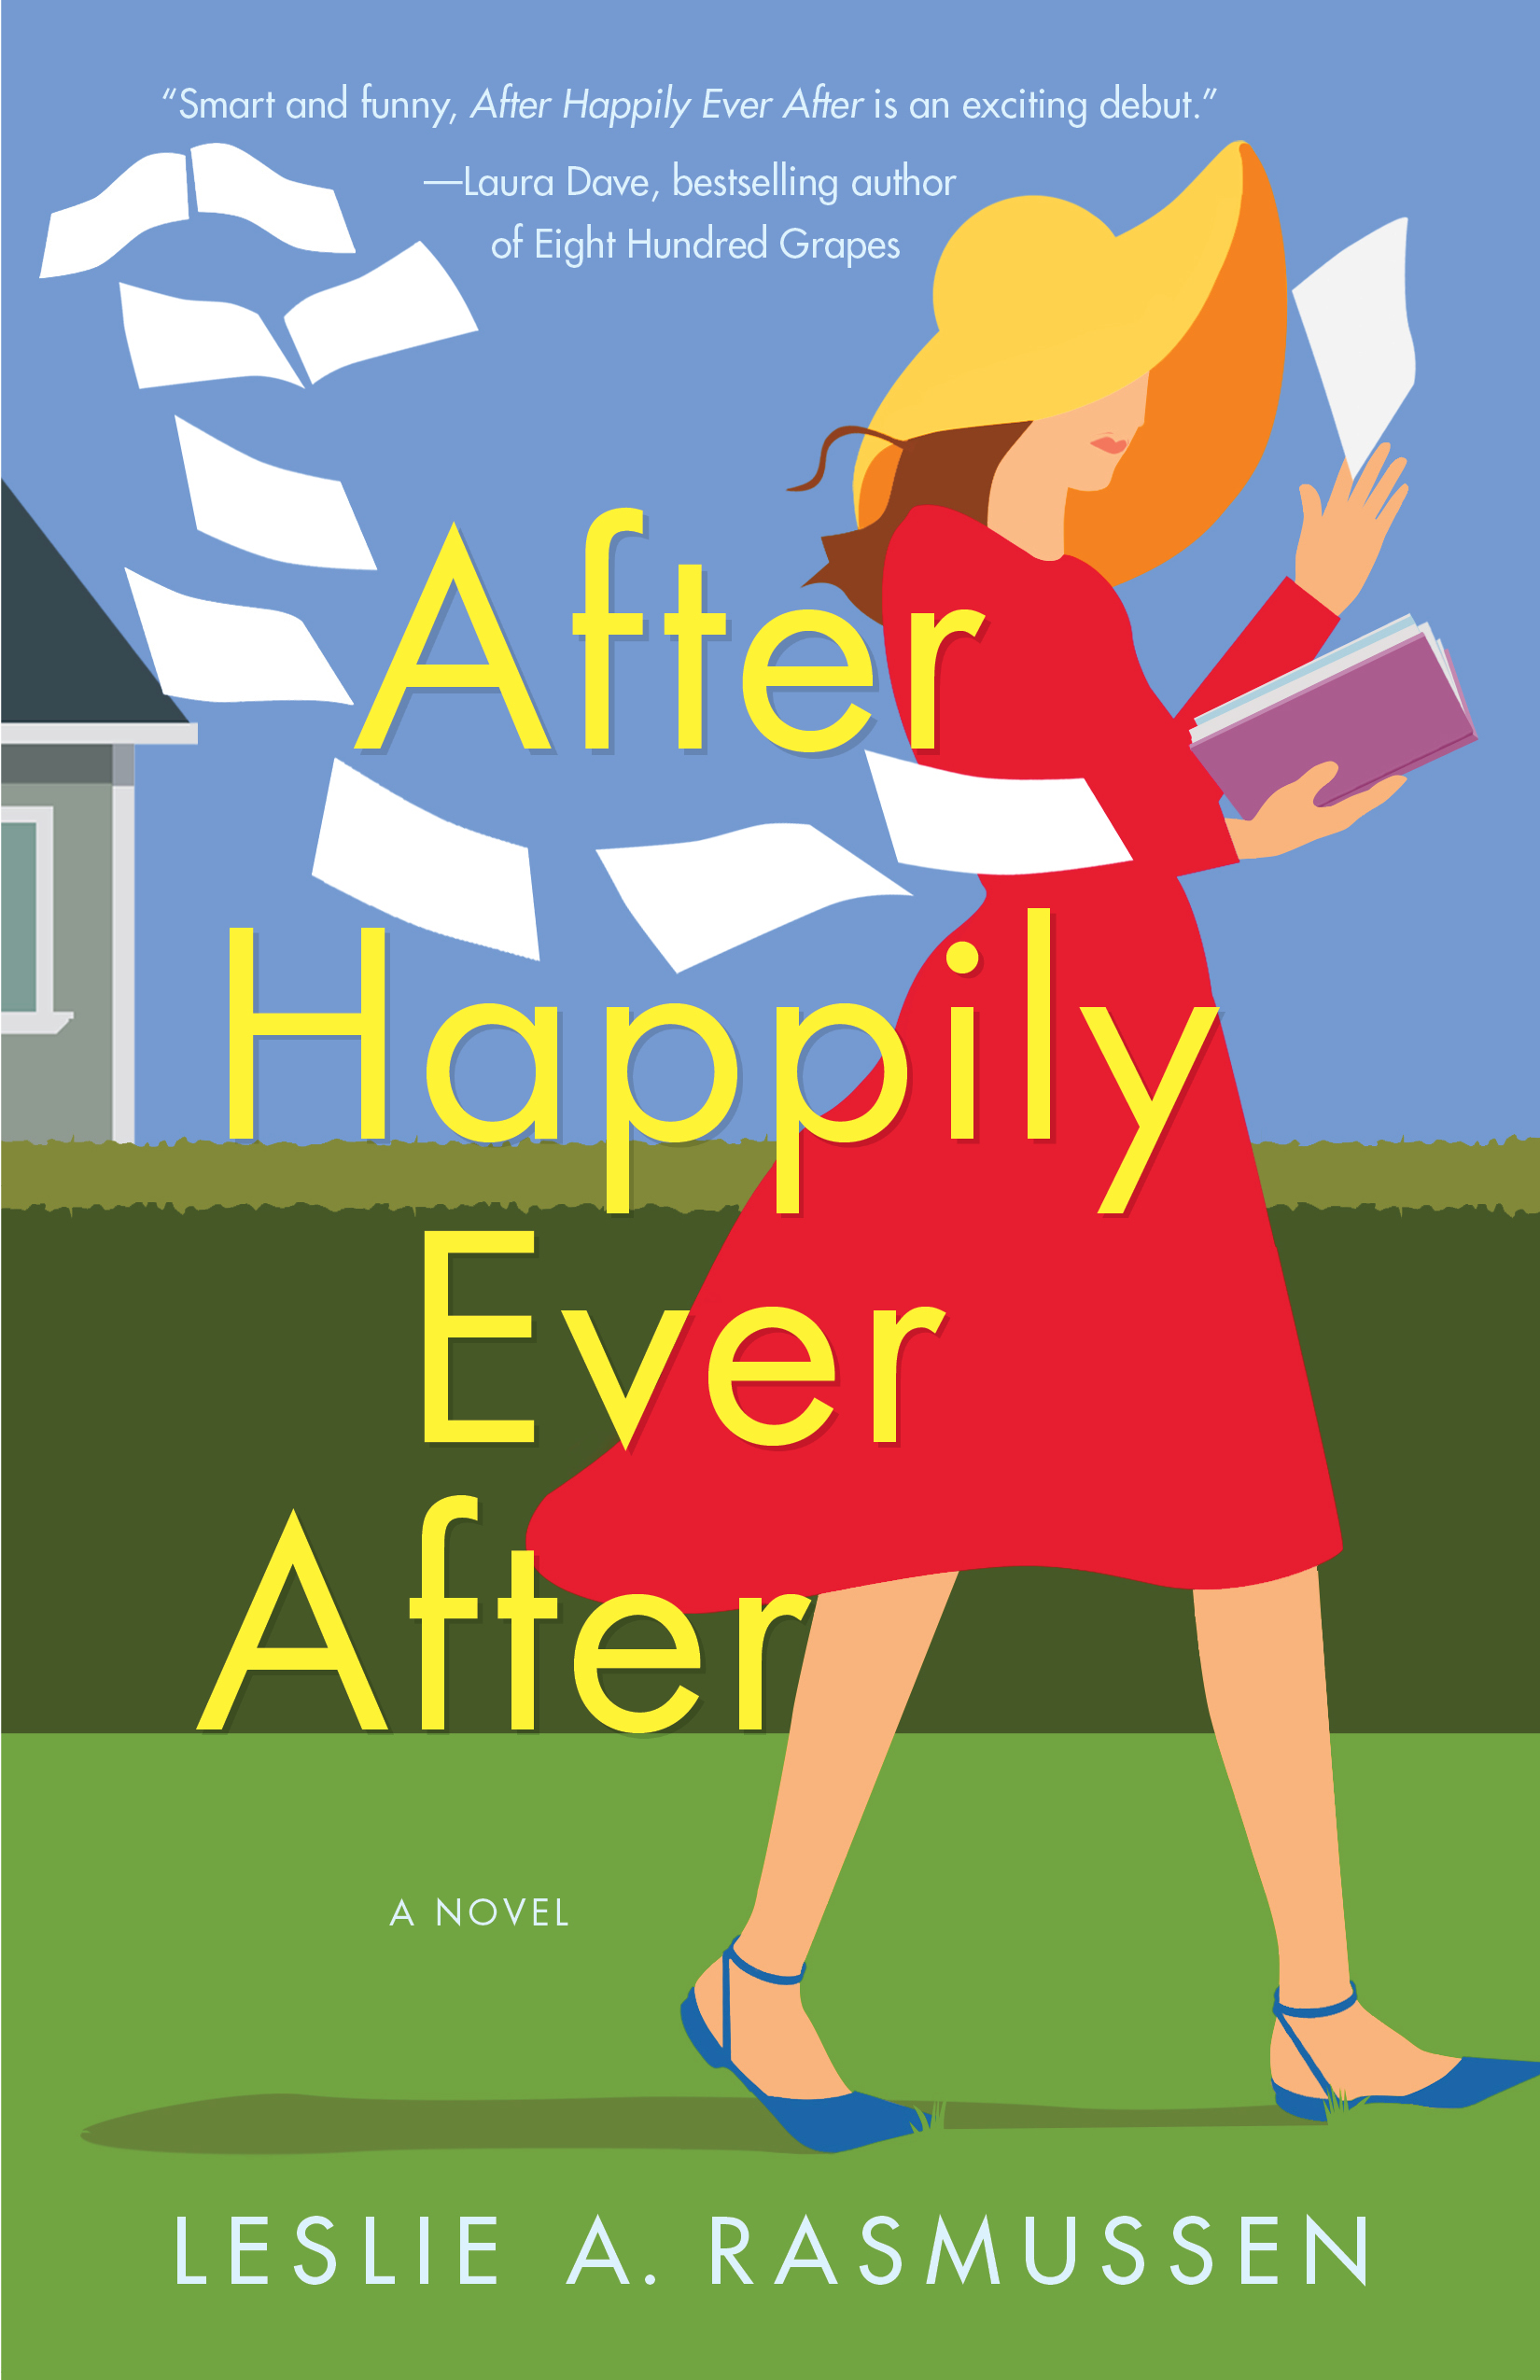 After Happily Ever After by Leslie A. Rasmussen